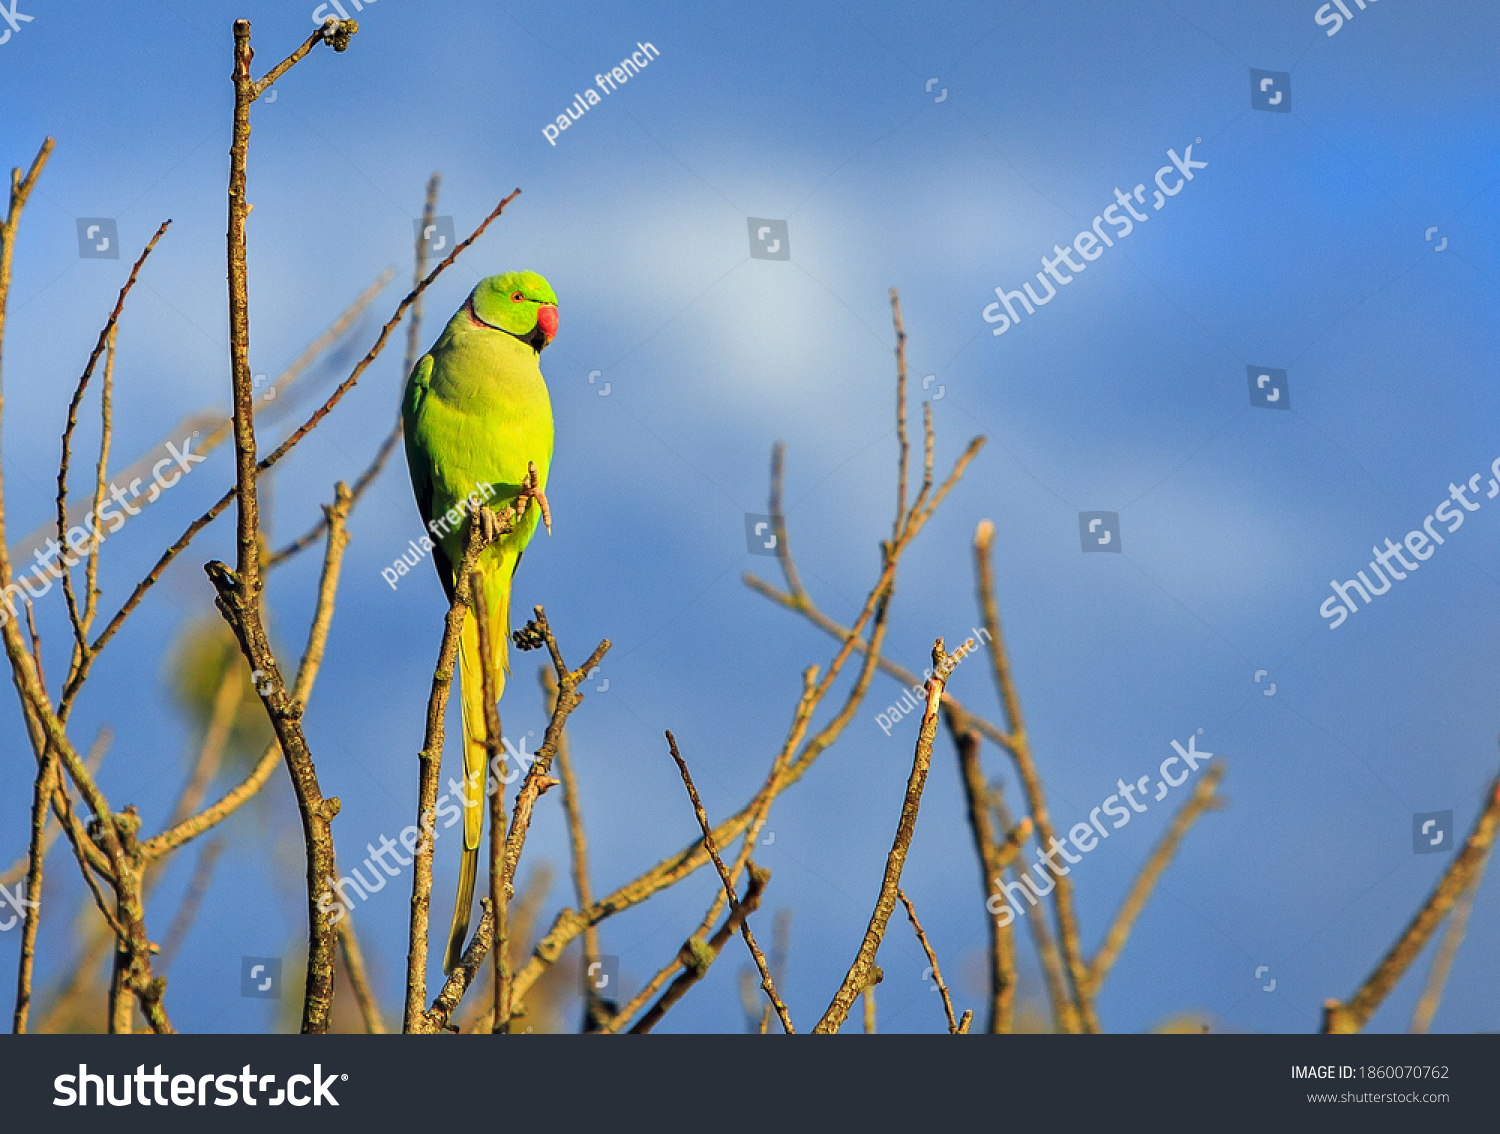 The ring-necked, or rose-ringed, parakeet is the UK's most abundant naturalised parrot, it became established in the wild in the 1970s after captive birds escaped or were released, lit by autumn sun